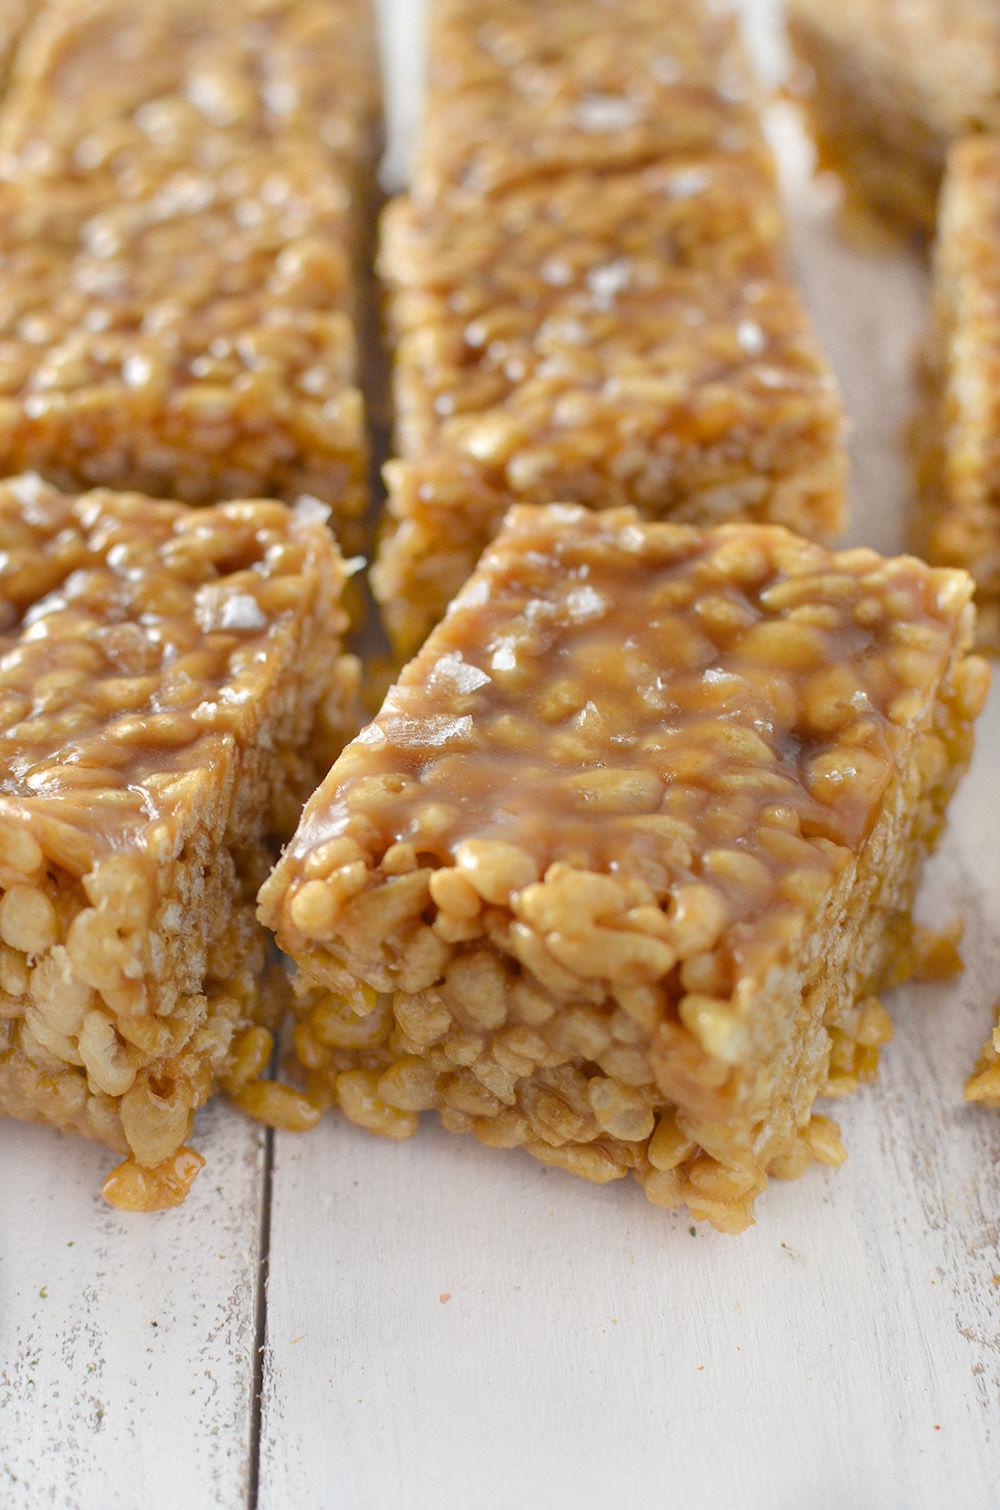 Vegan Salted Caramel Hippie Bars - Gluten-free, and cane sugar-free